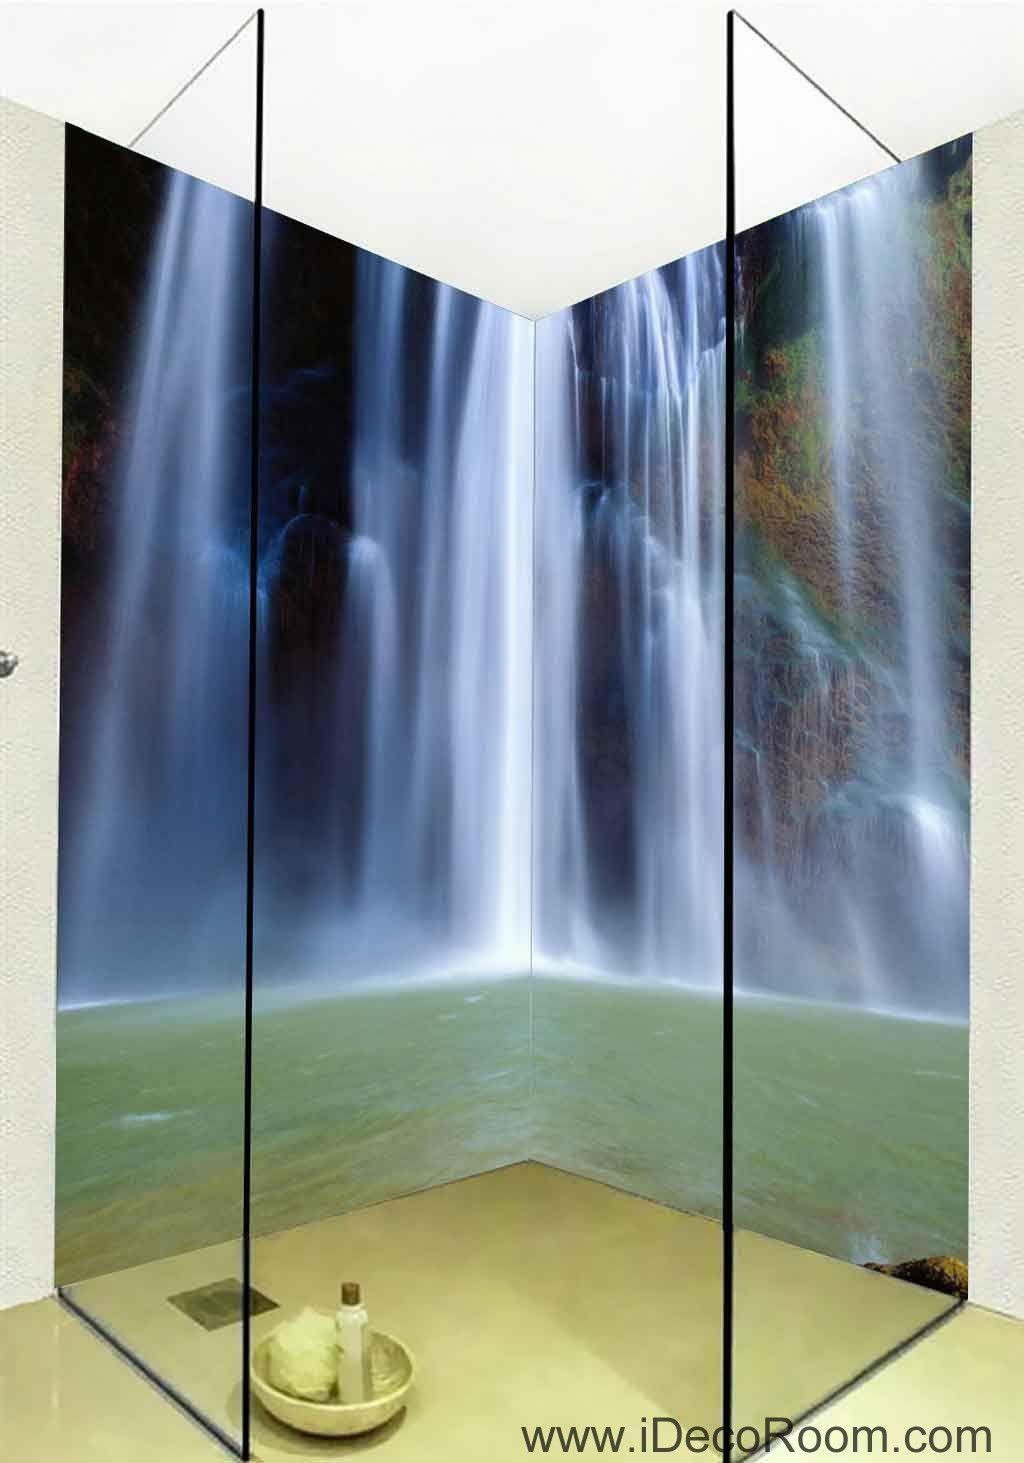 Wallpaper Murals For Bathrooms 3d Wallpaper Long Waterfall Water Wall Murals Bathroom Decals Wall